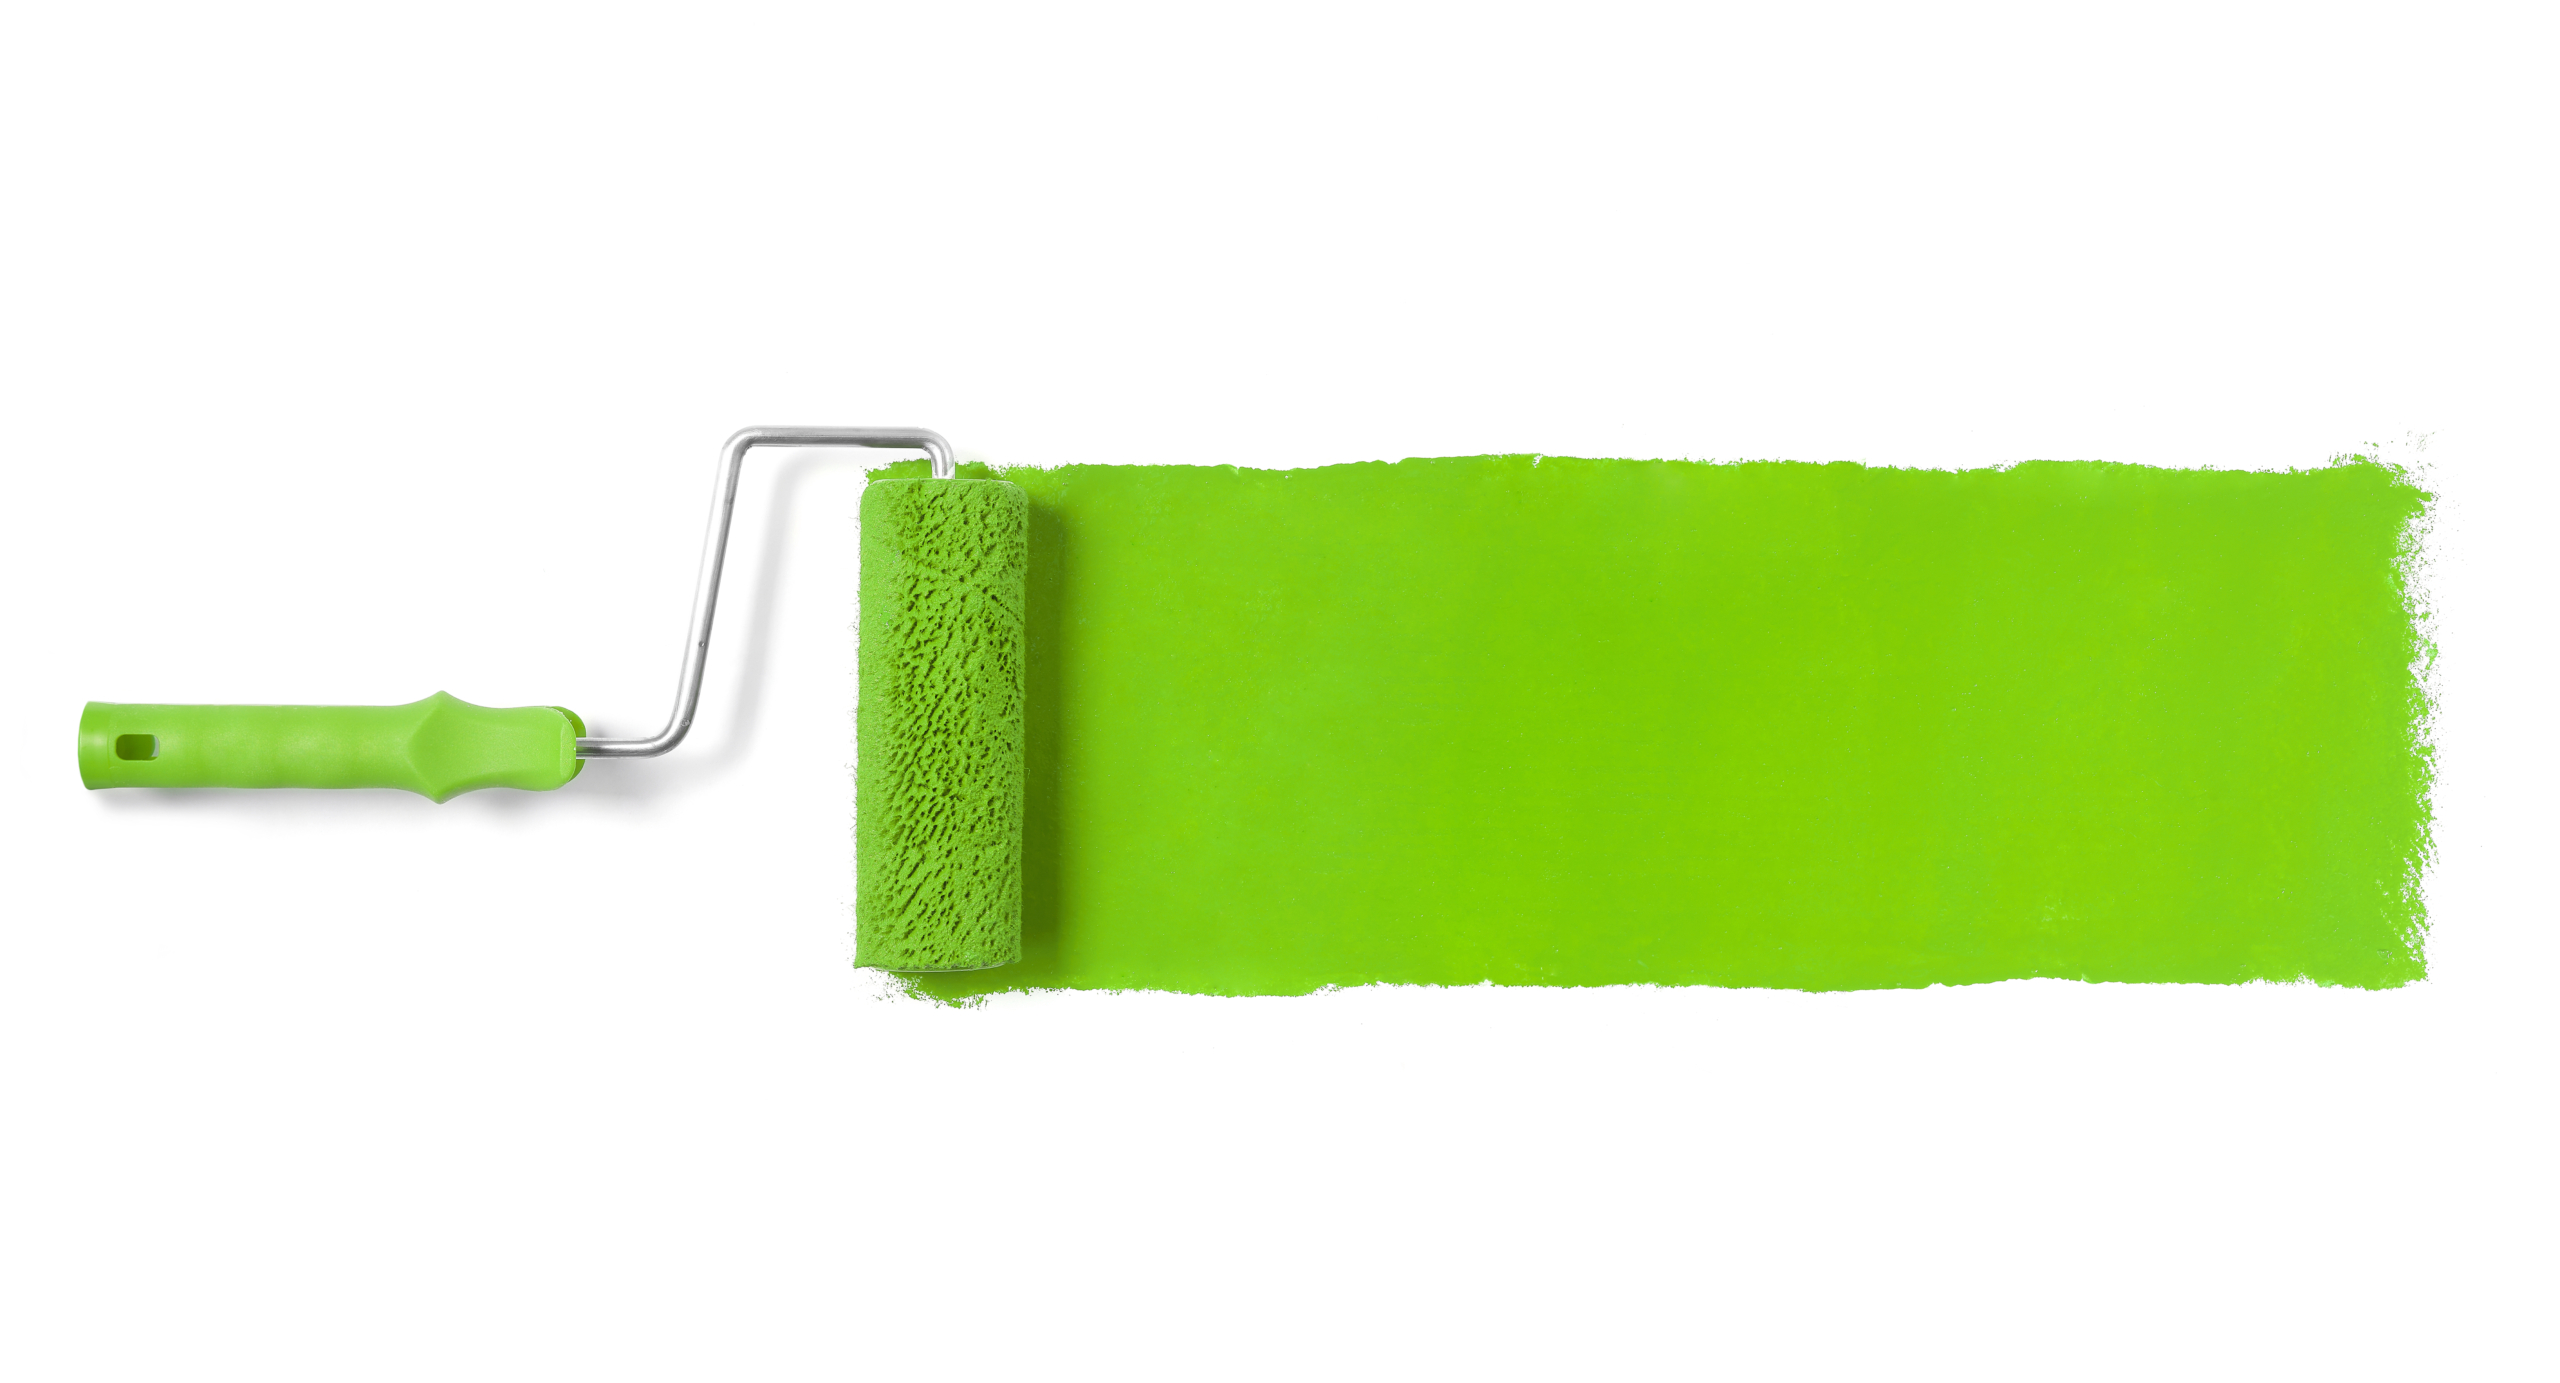 Green paint offers competitive marketing opportunities